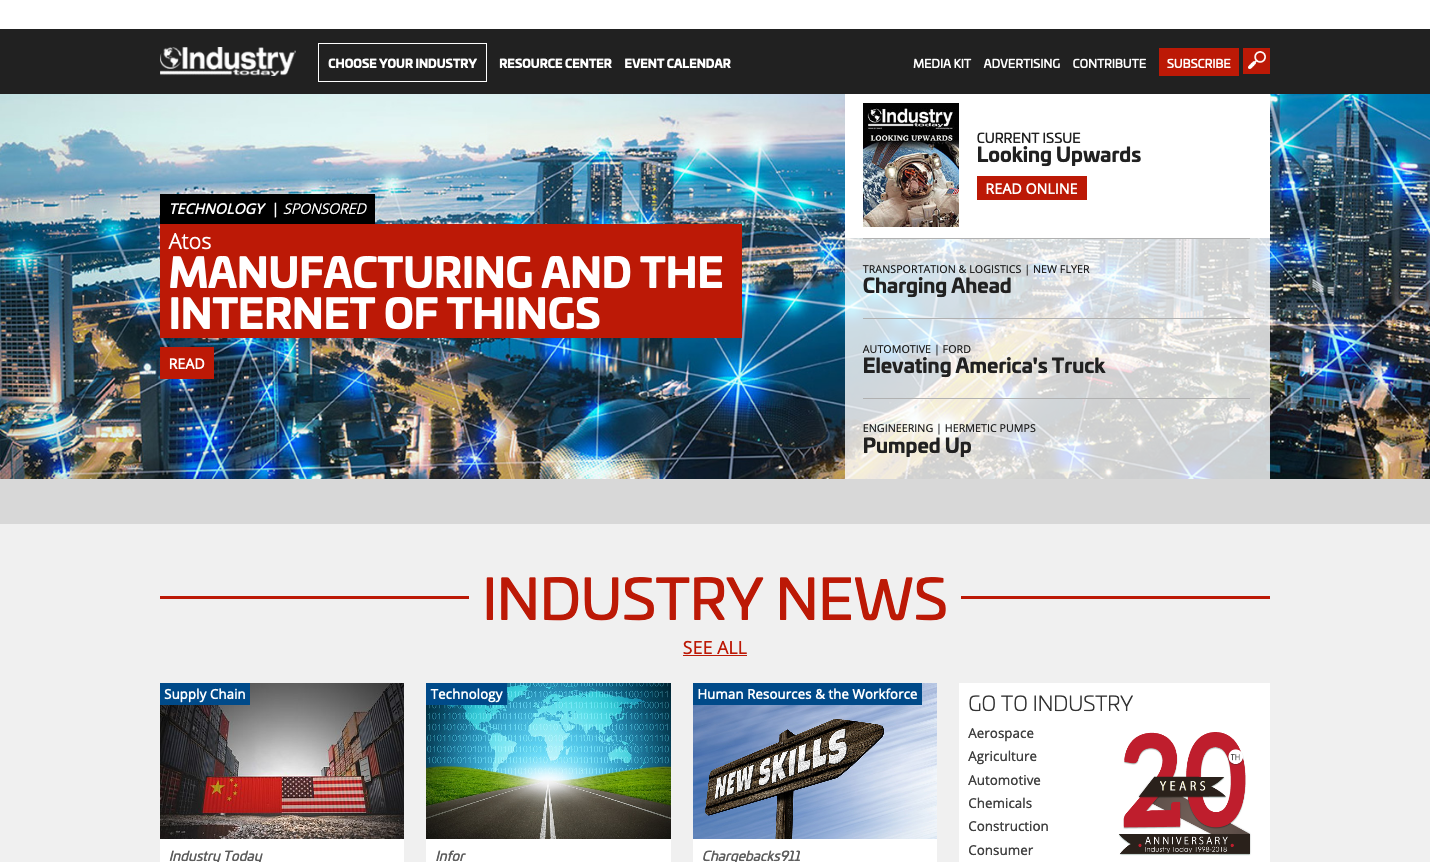 Industry Today Publication